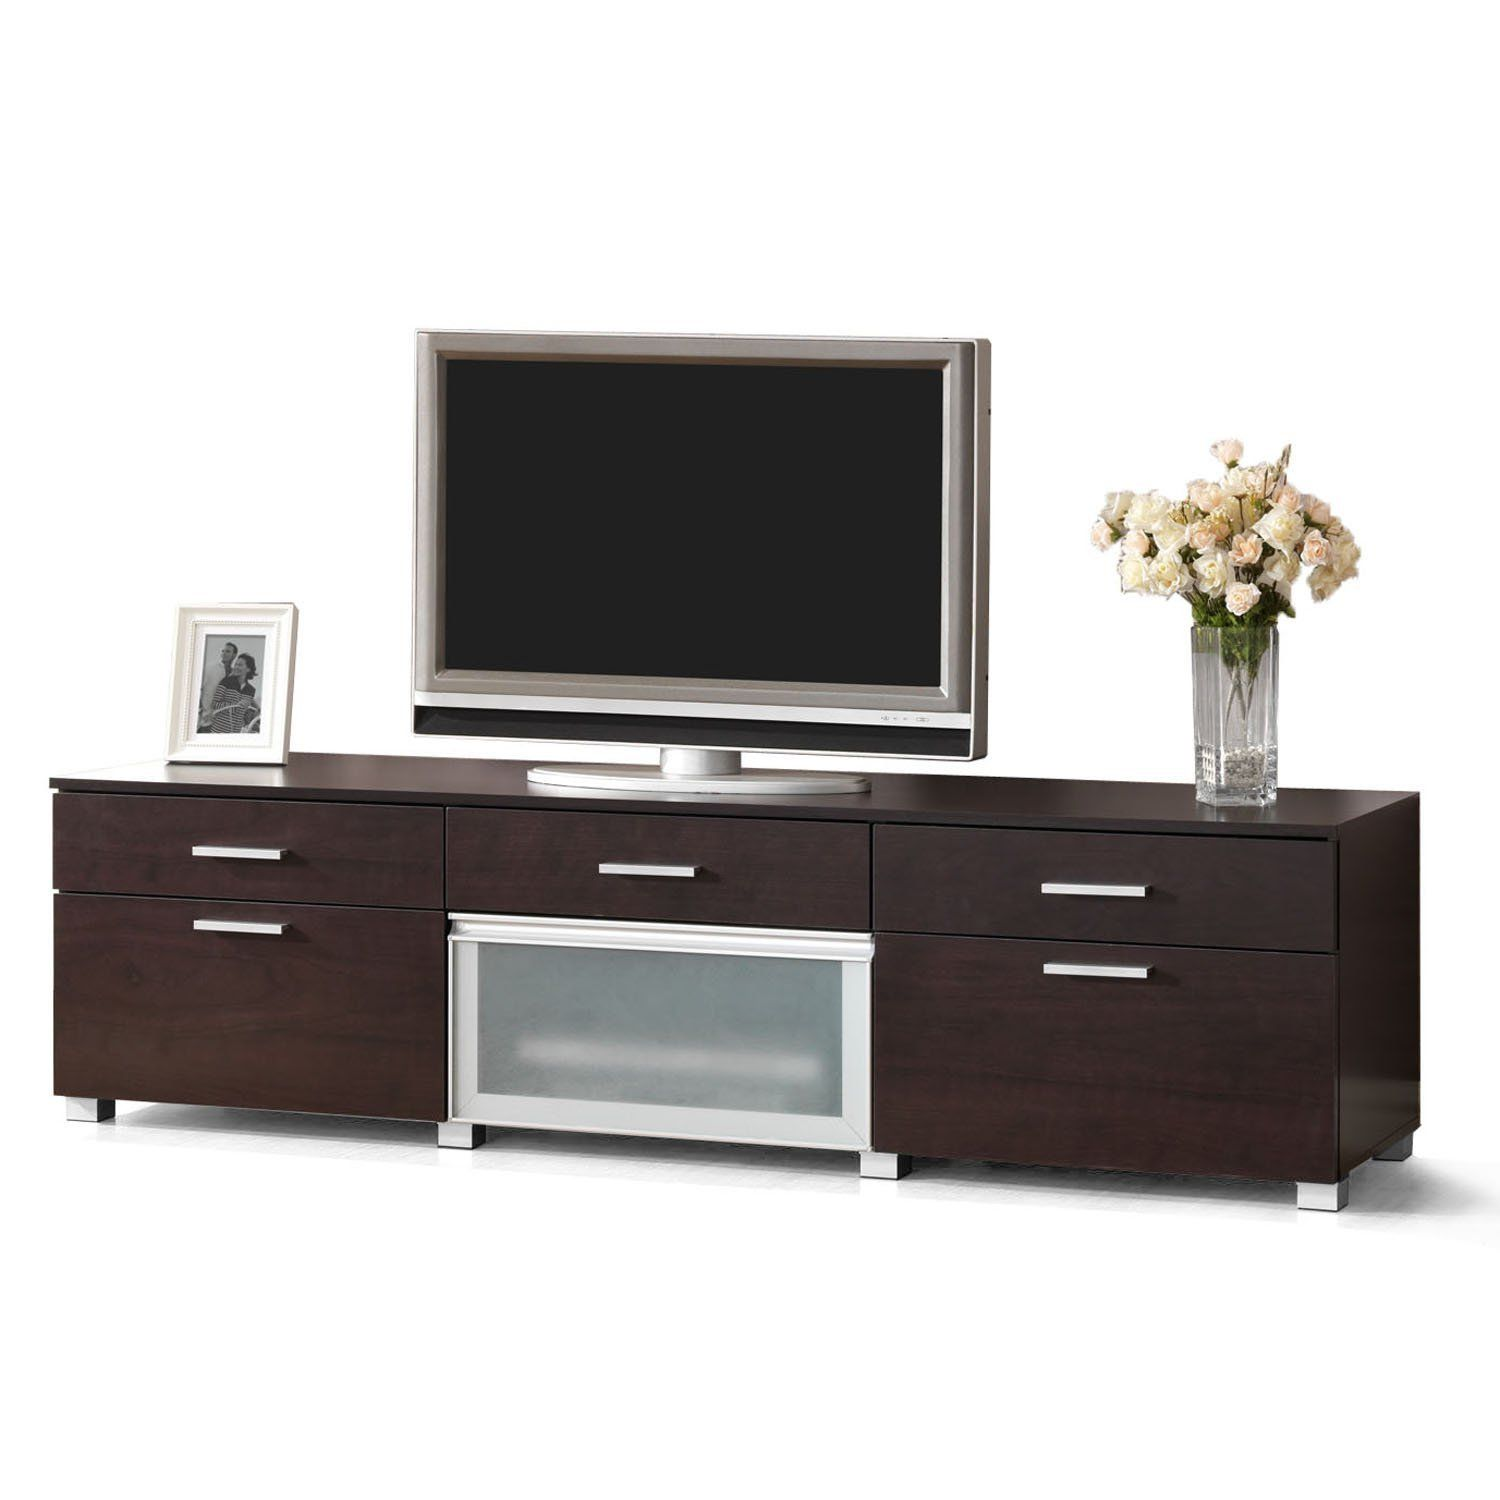 Amazon Com Baxton Studio Basilio Modern Tv Stand Dark Brown